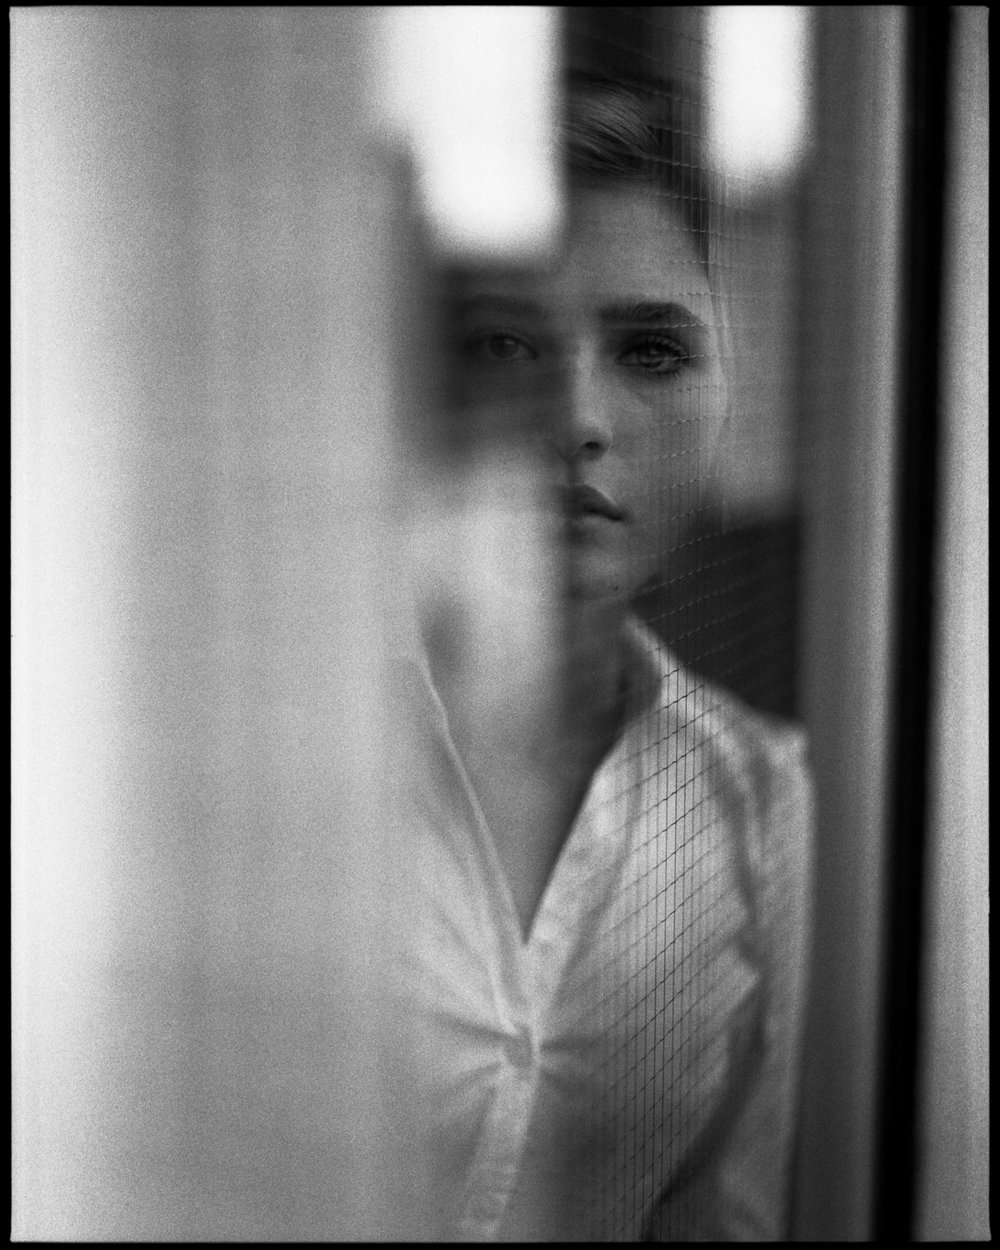 8_Sydney_Studio_Natural_Light_Shoot_Through_the_Glass_Pentax_67_Ilford_HP5_Copyright_Taylor_Noel_Photography_NYC.jpg